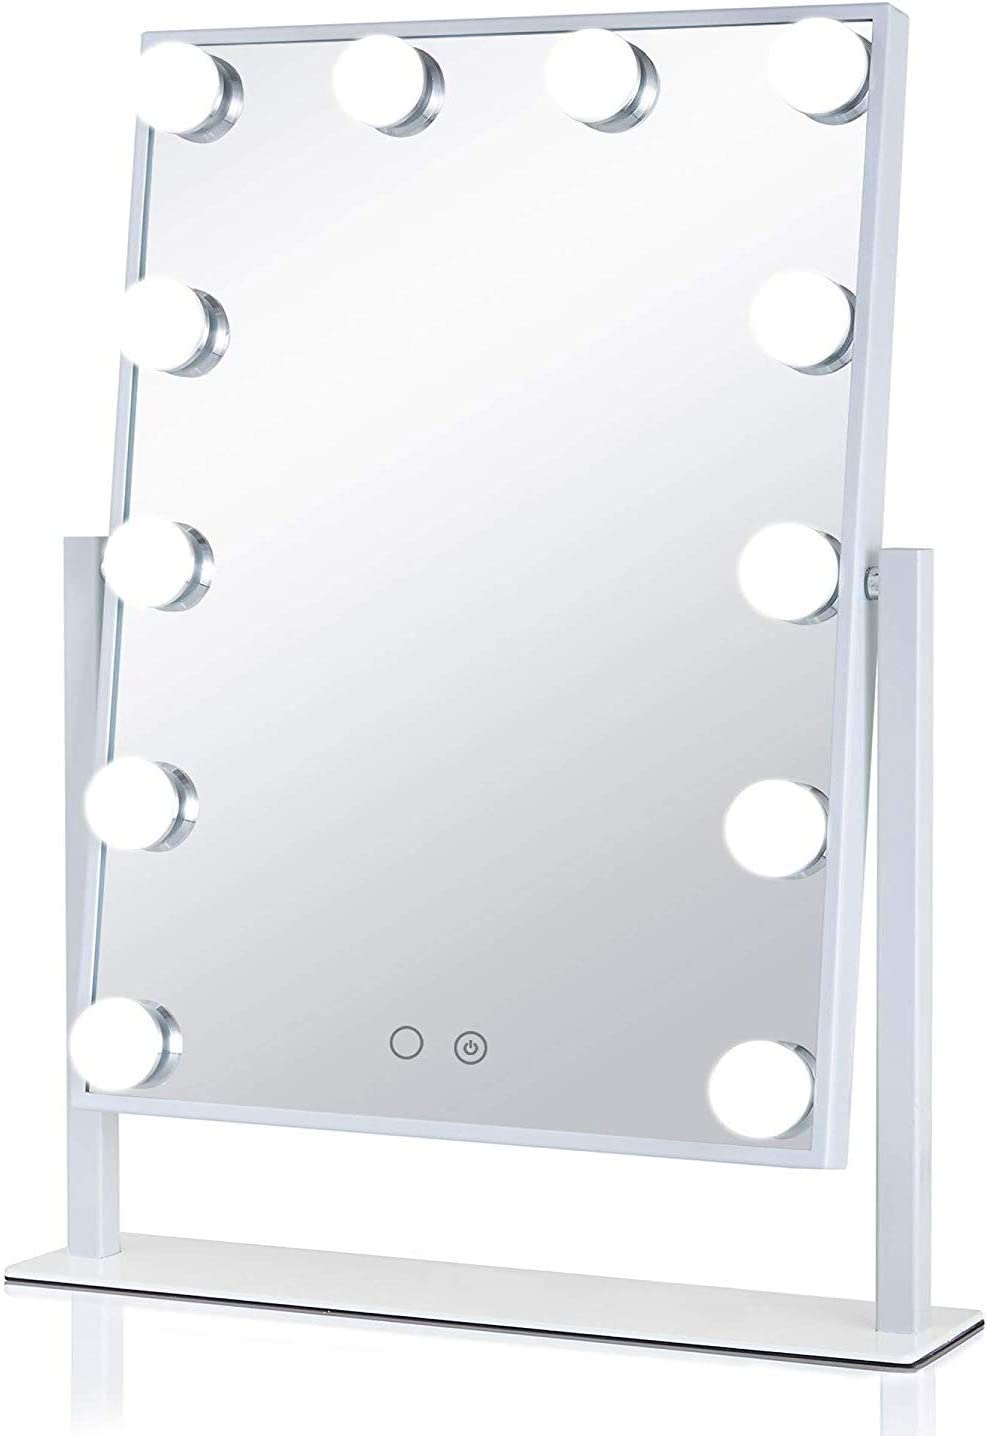 Aimee_JL Hollywood Vanity Mirror, HD Makeup Cosmetic Mirror with Lights Desktop LED Mirror With12 Big Bulbs Touch Screen Adjustbale Brightness The Same Mirror as The ins Blogger